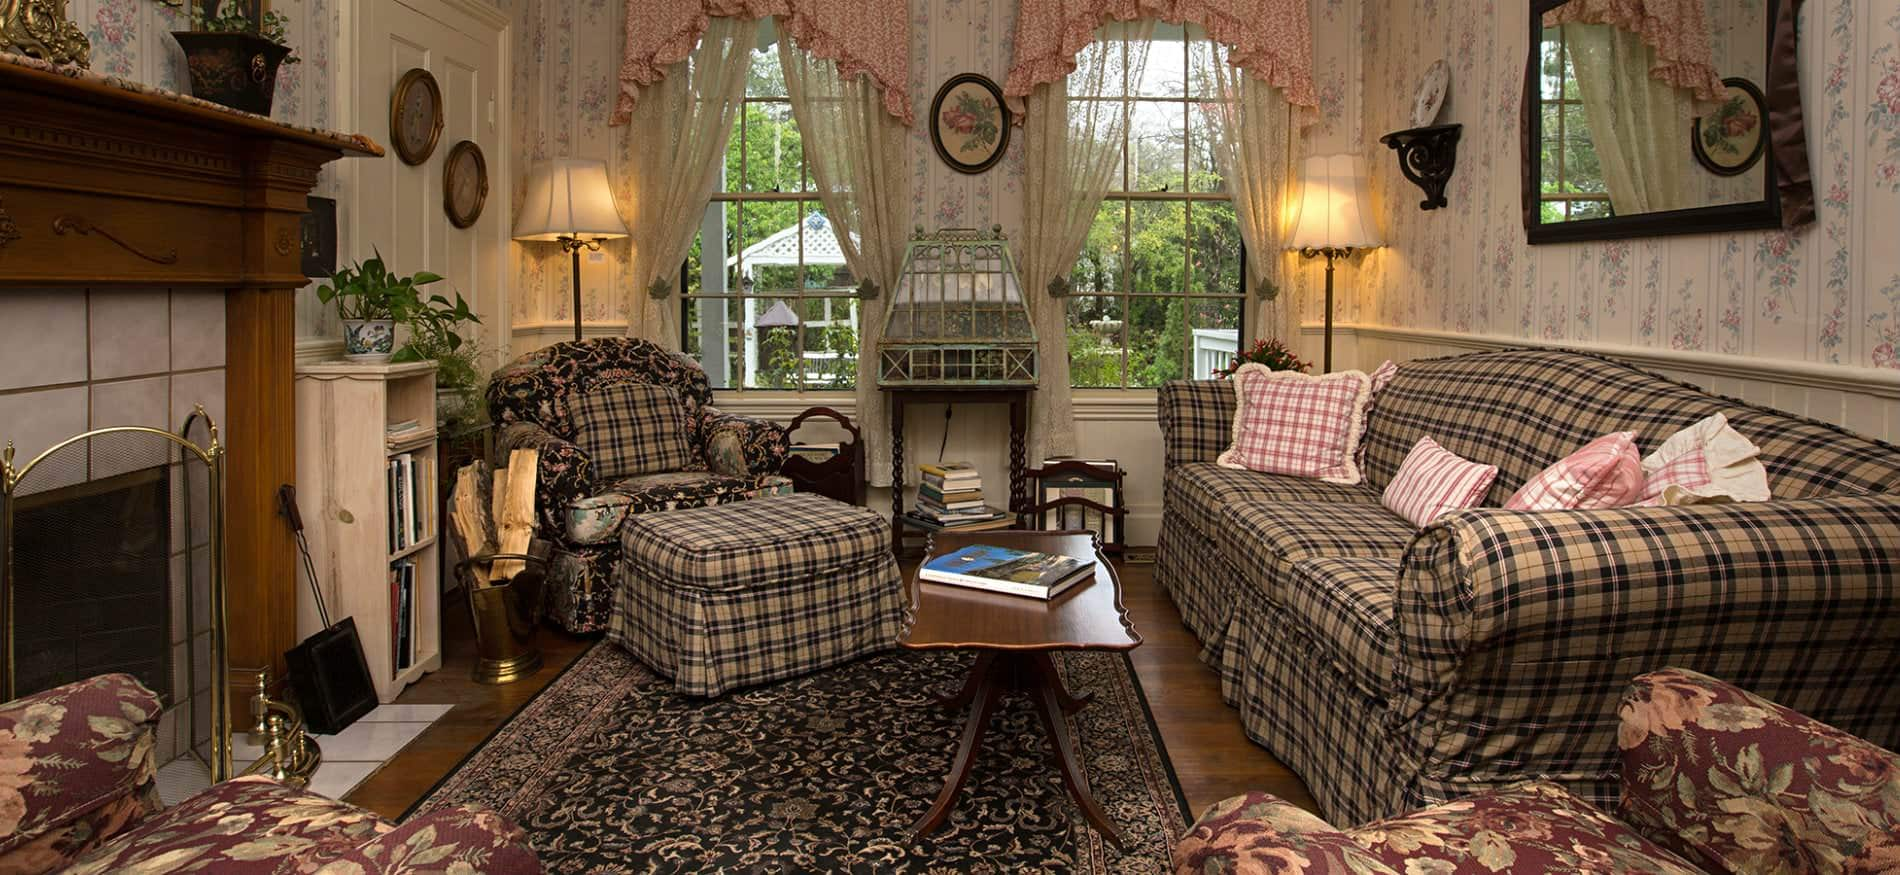 Sitting room with black and white plaid sofa and chair, coffee table, wood floors, and two windows with lace curtains